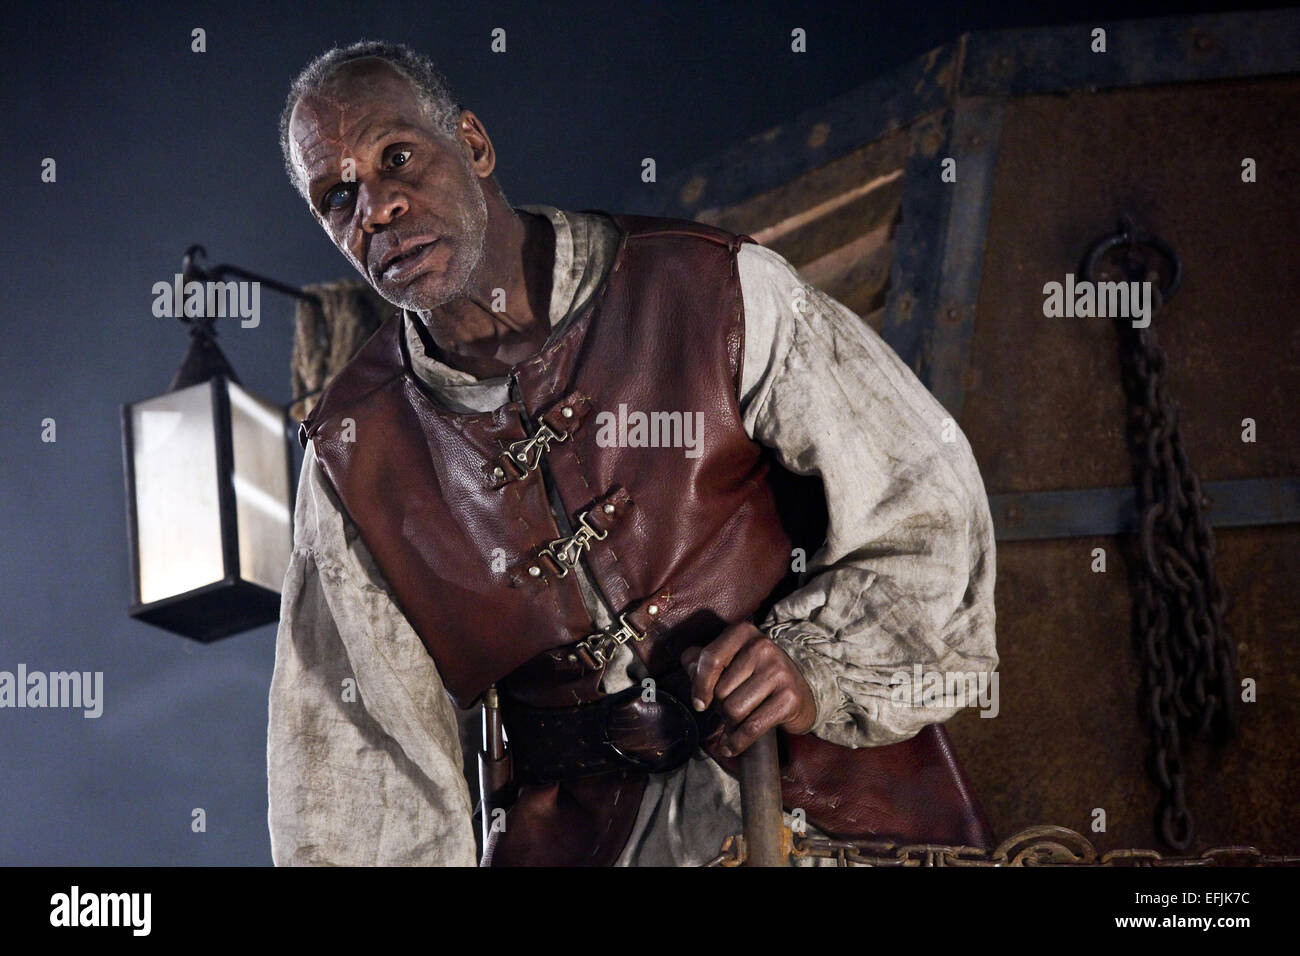 DANNY GLOVER AGE OF THE DRAGONS (2011) - Stock Image